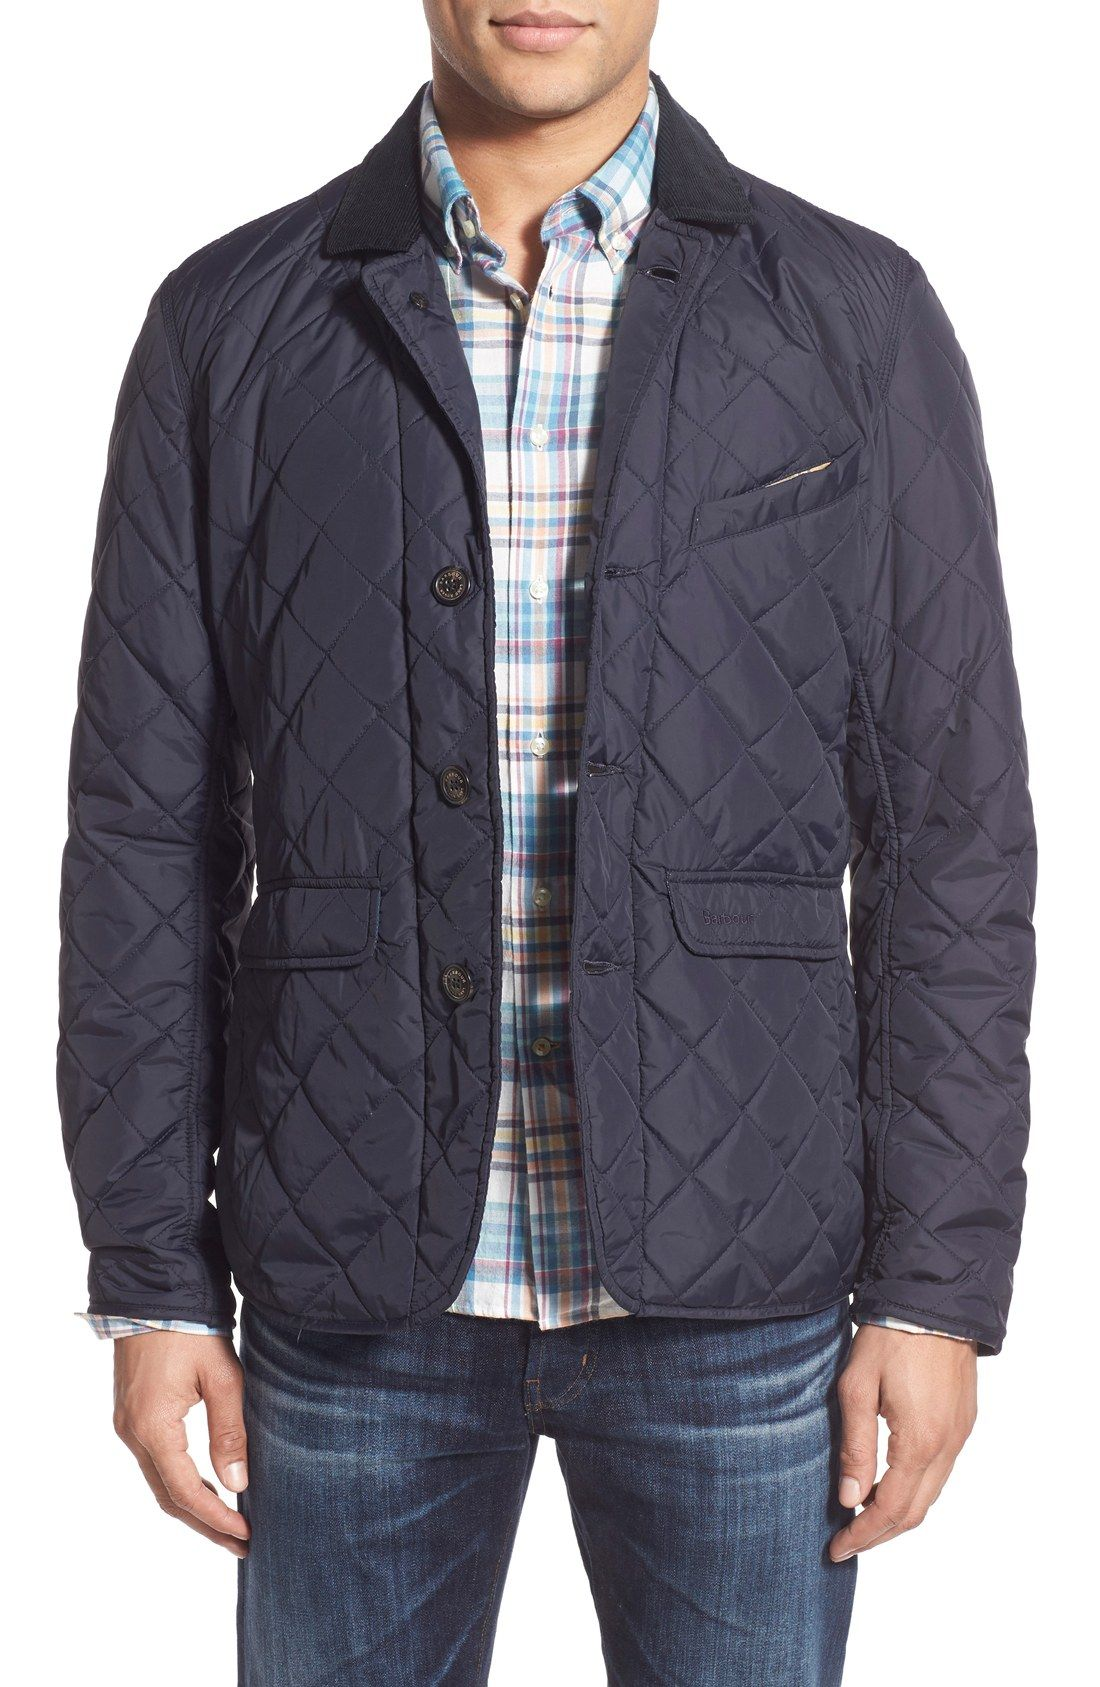 Barbour Quilted Jacket with Corduroy Collar | Clothes | Pinterest ... : mens lightweight quilted jacket - Adamdwight.com